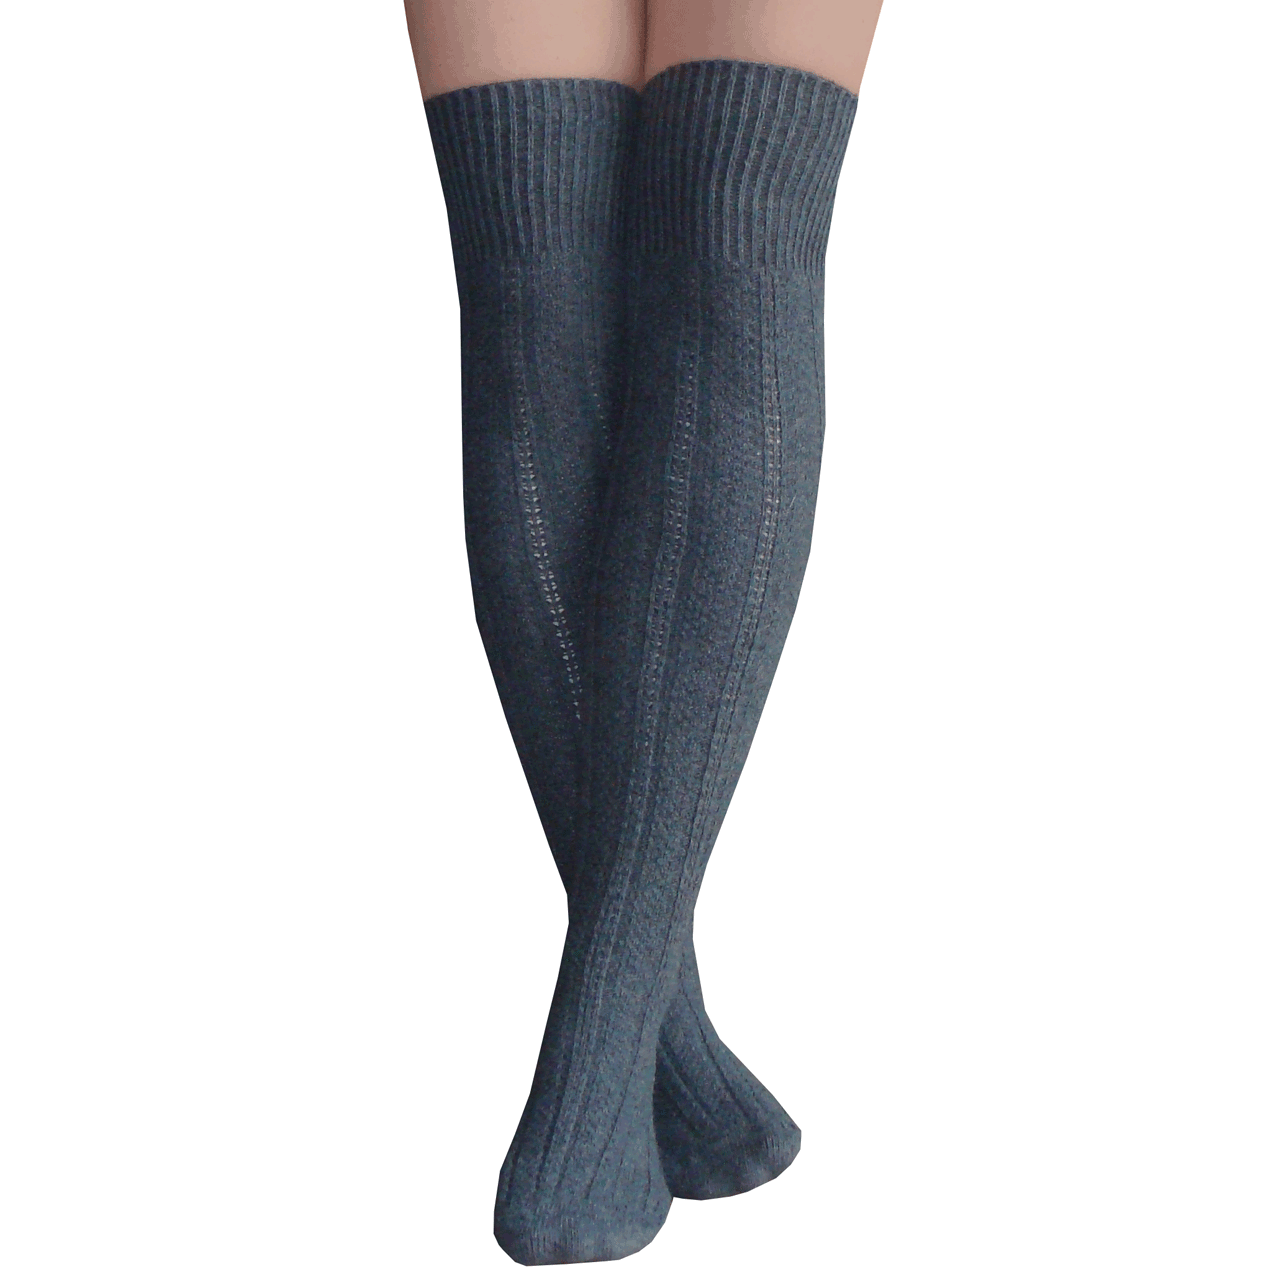 Graphite Thigh Highs